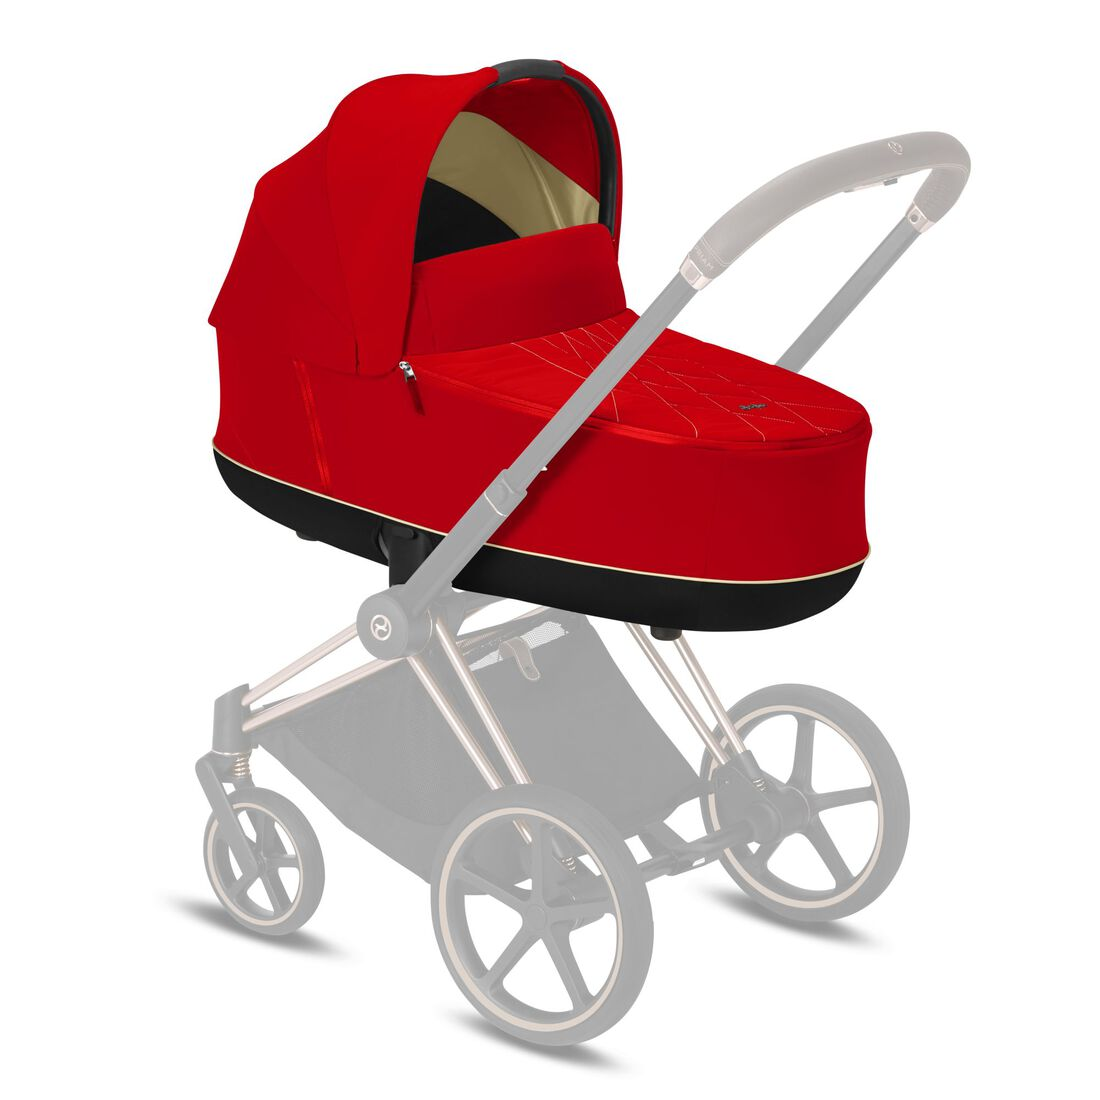 CYBEX Priam Lux Carry Cot - Autumn Gold in Autumn Gold large image number 5